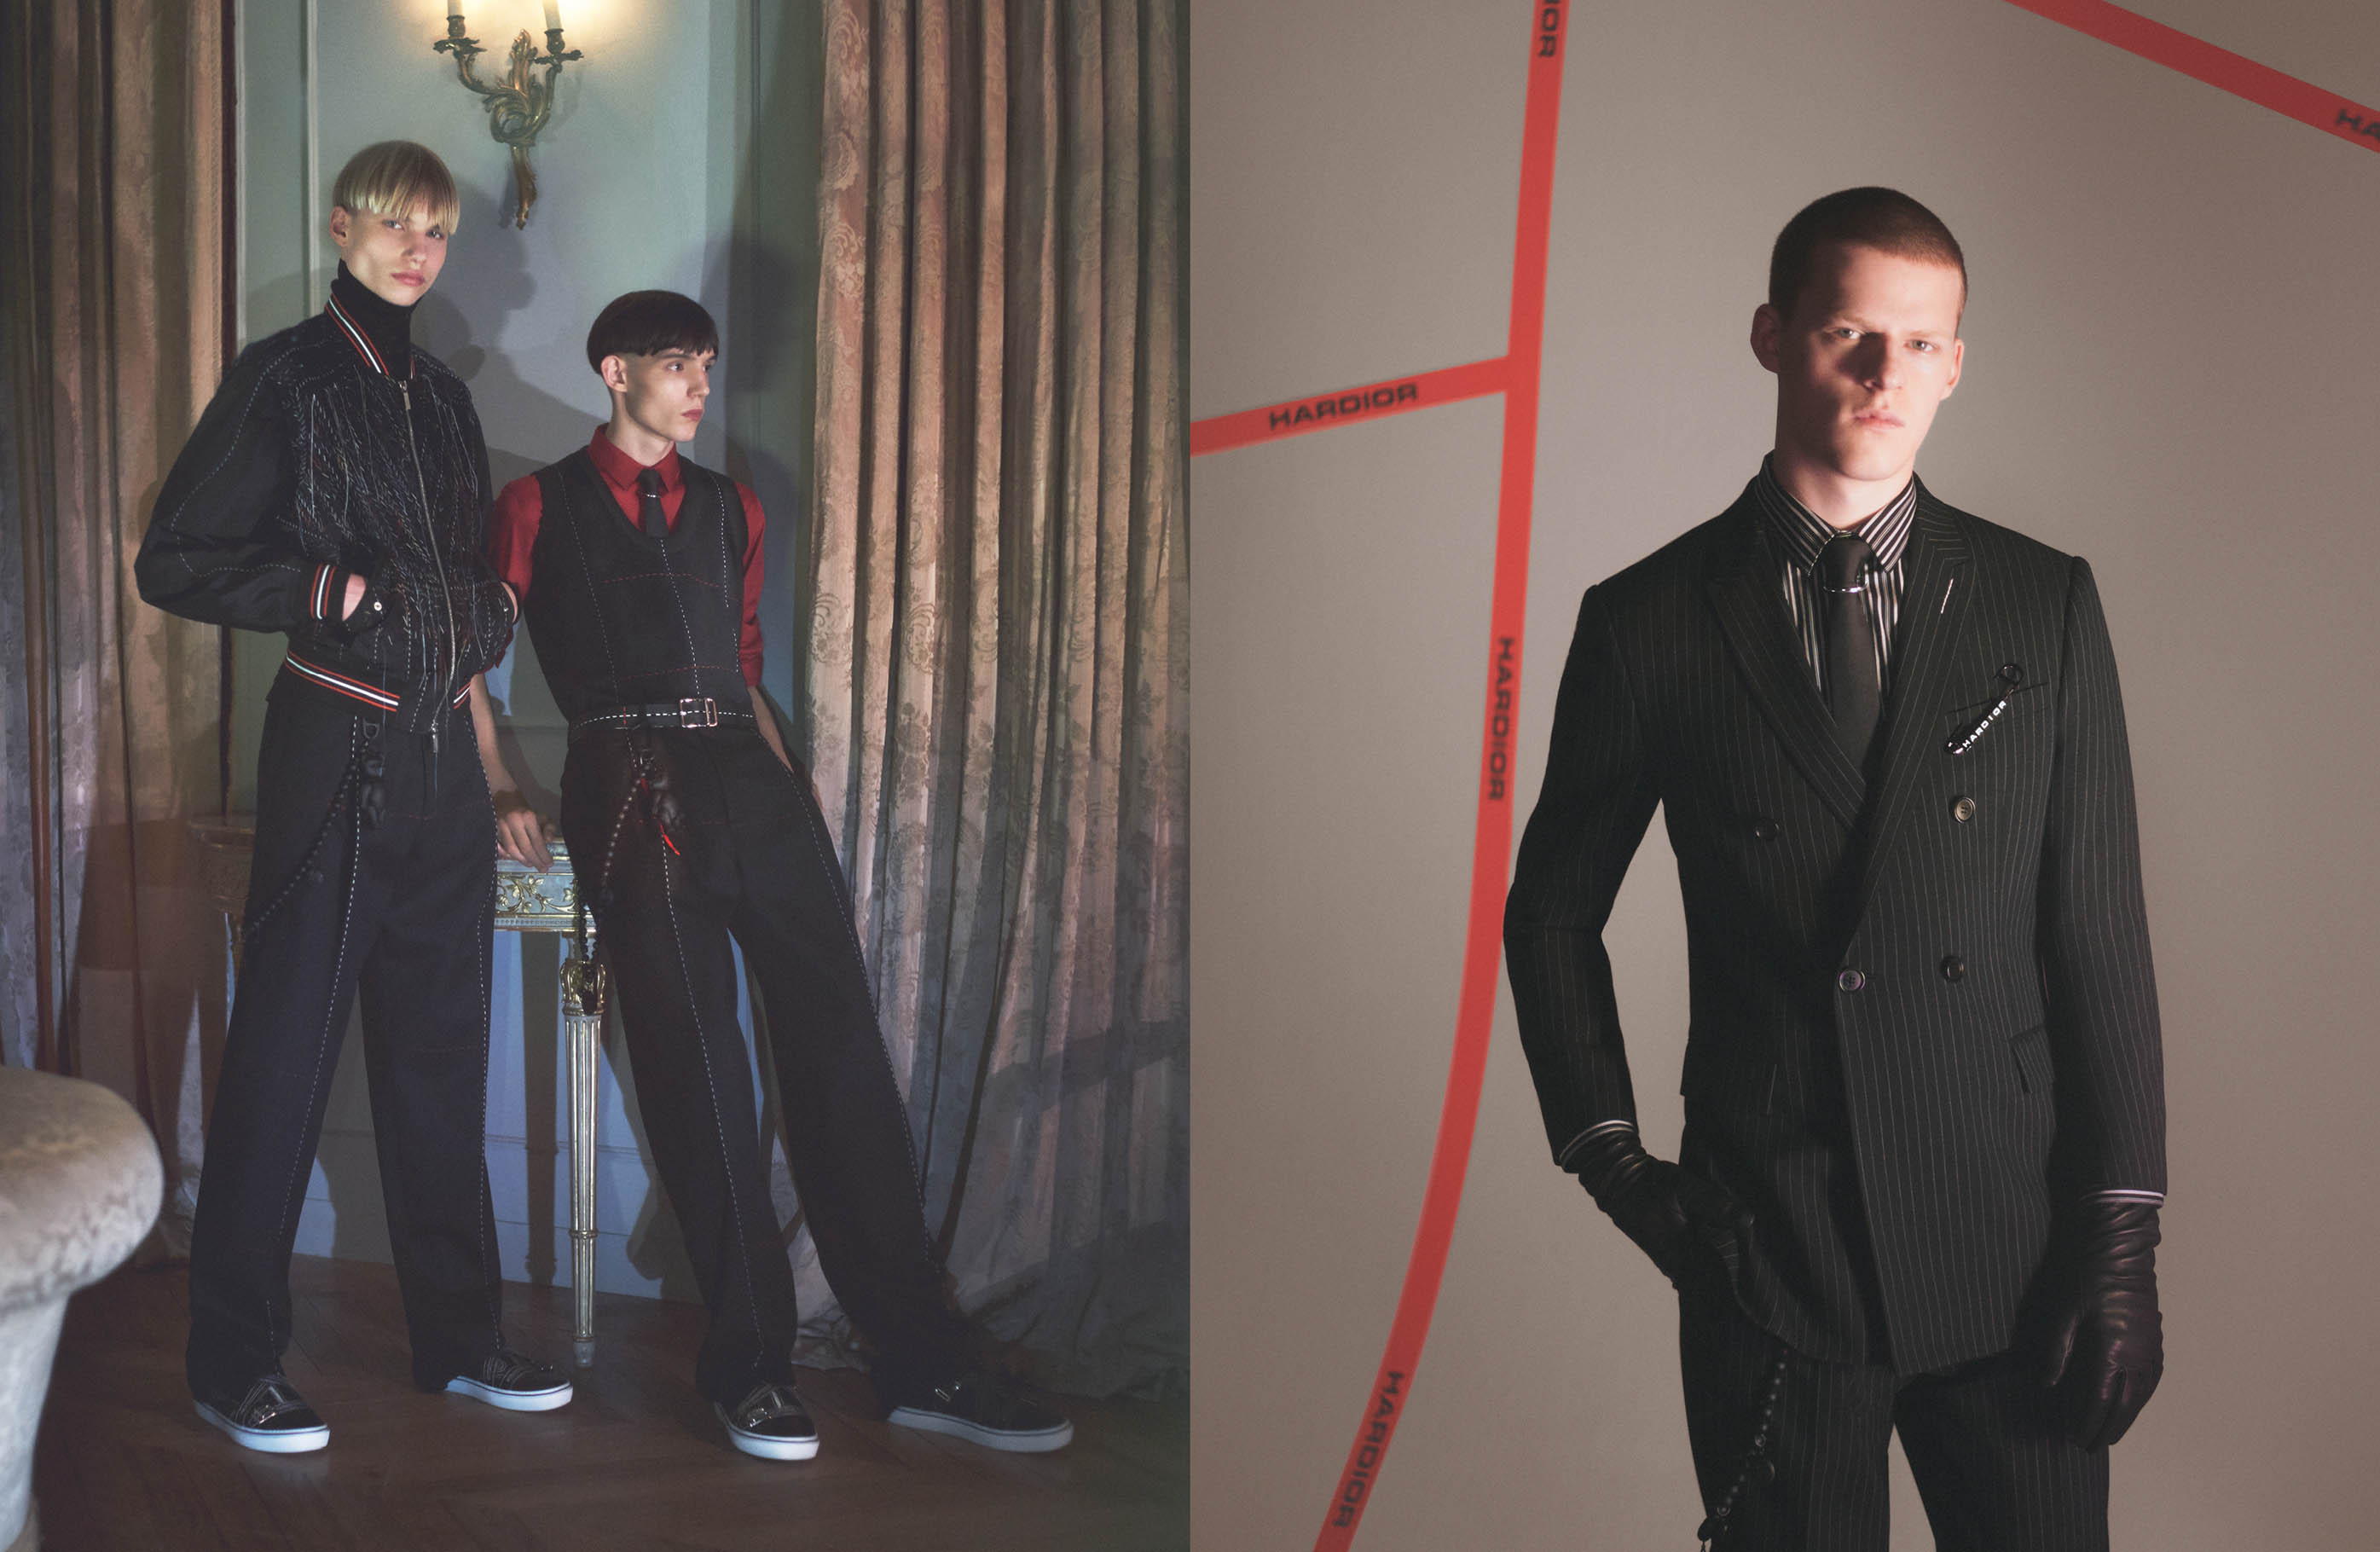 #Intothenight, il video realizzato da David Sims per la campagna Dior Homme inverno 2017-2018.